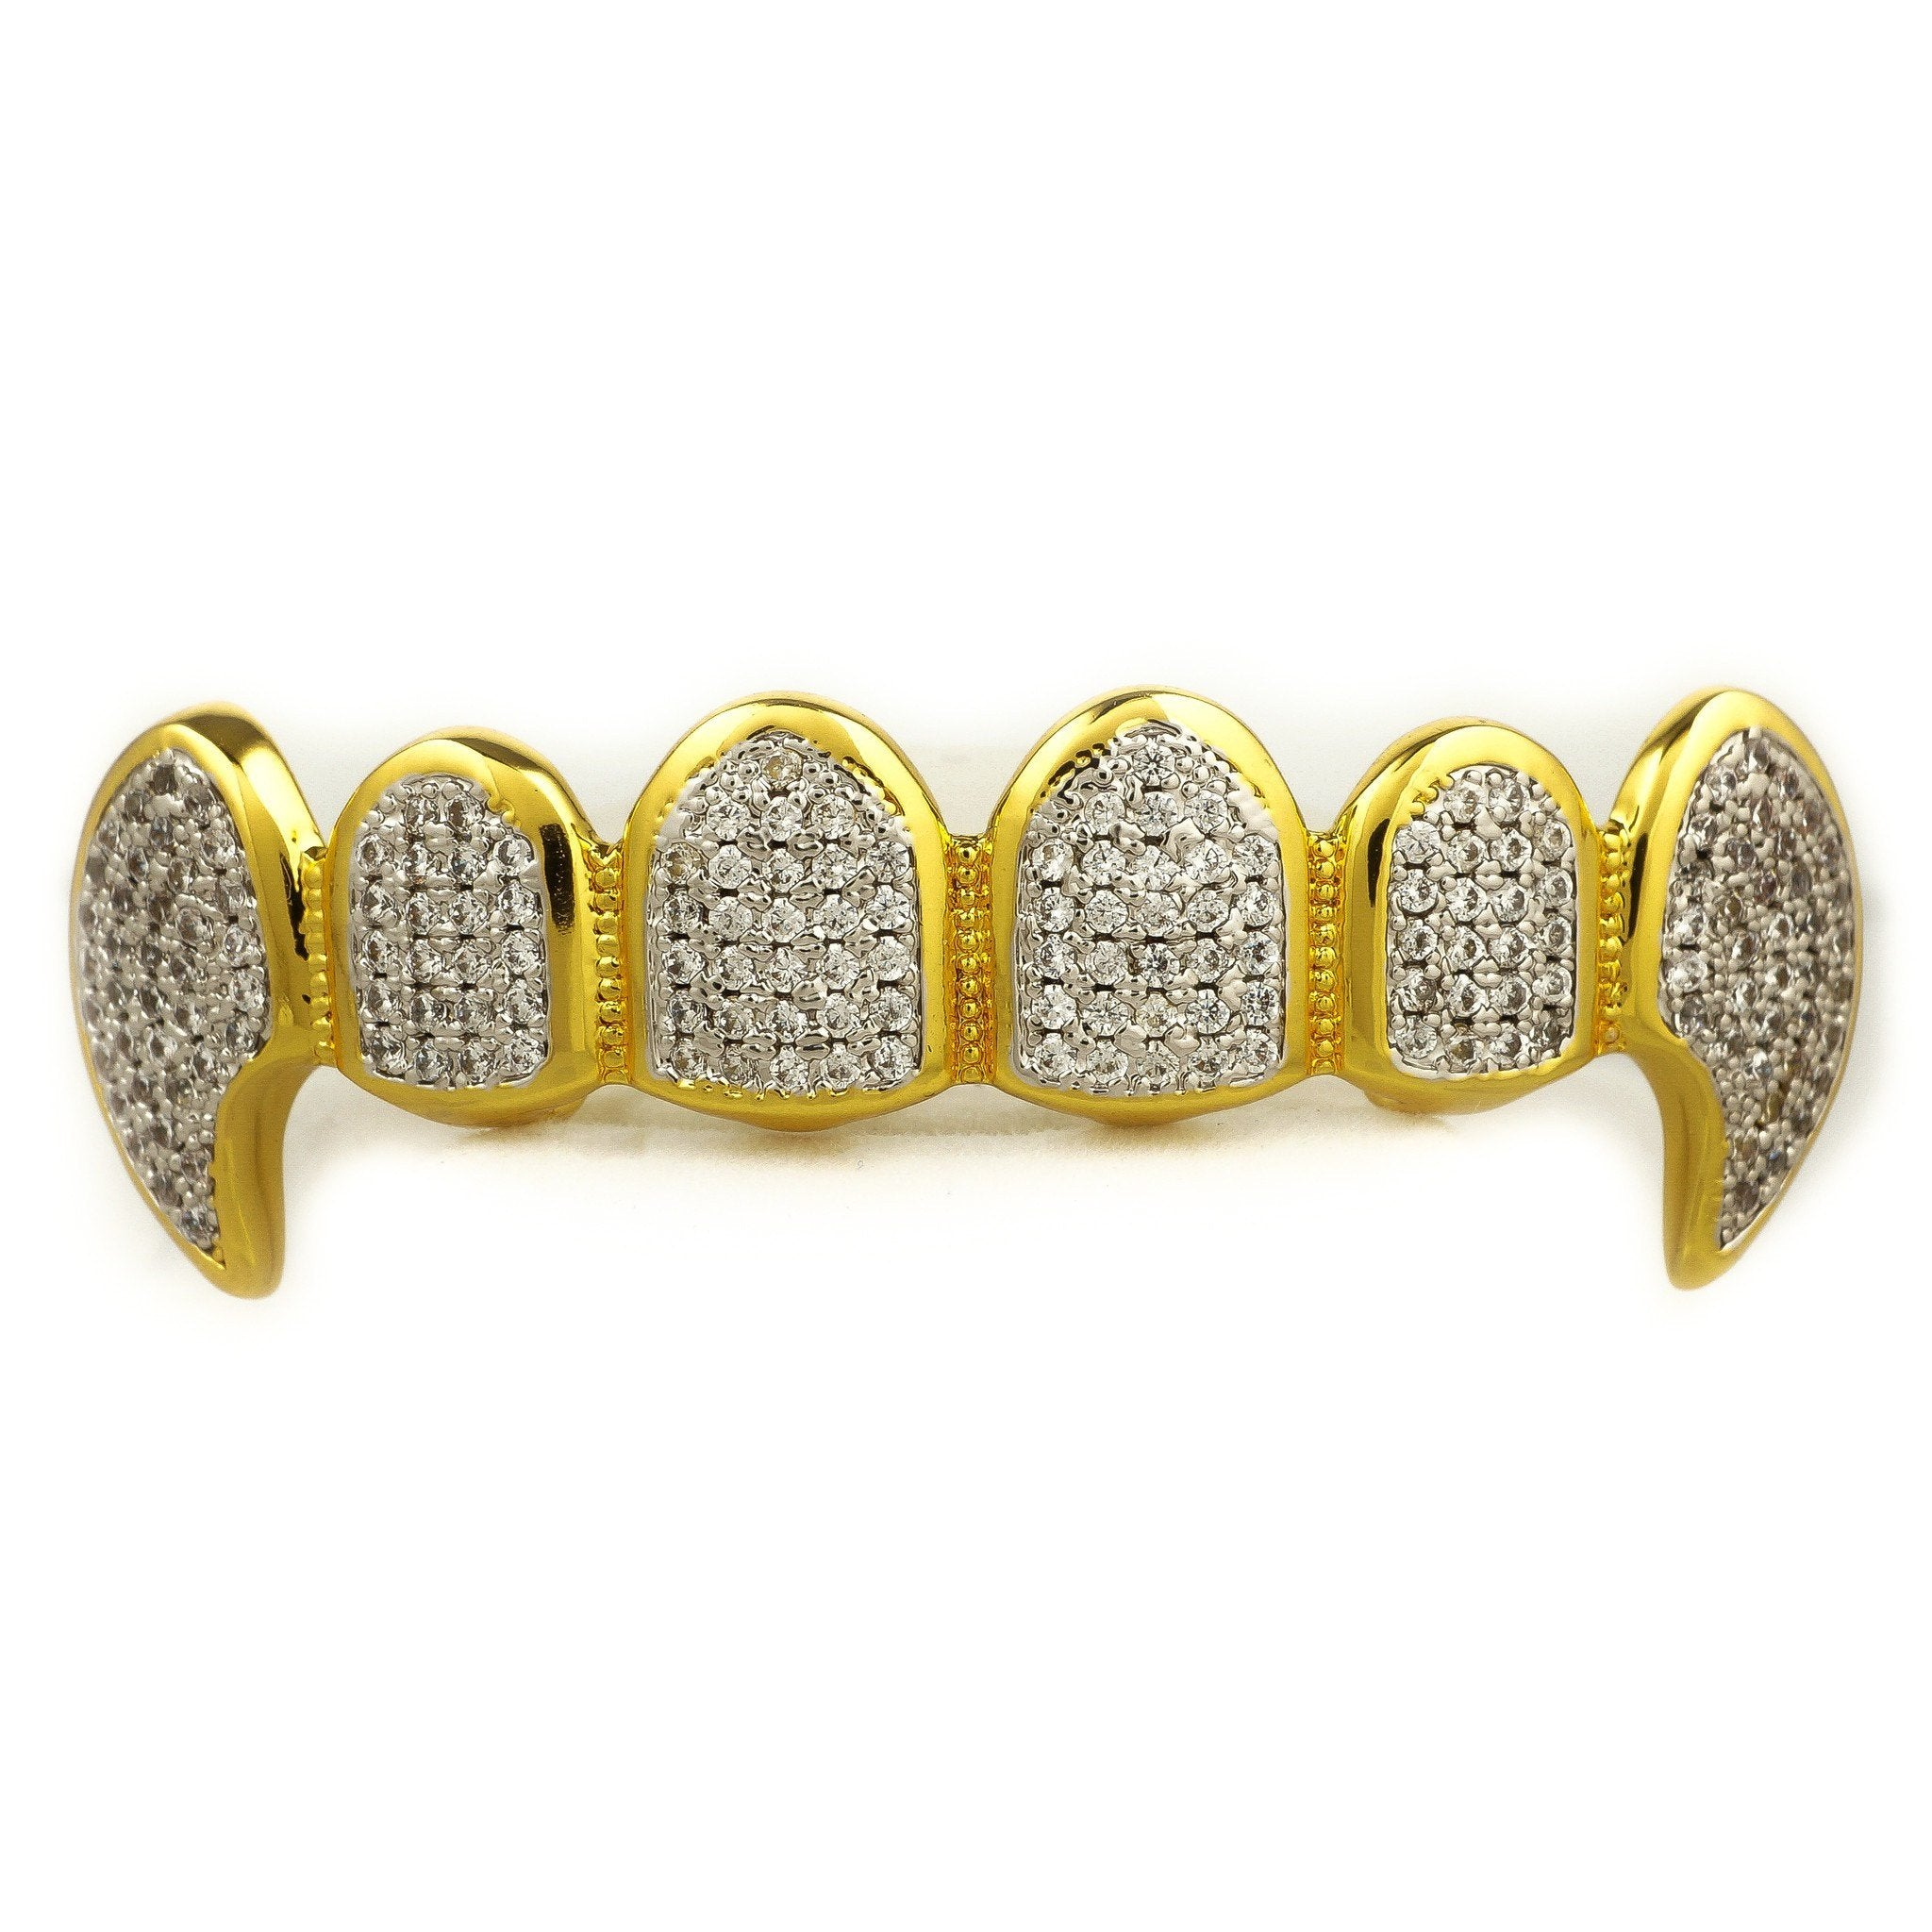 Affordable 18k Gold Vampire Dracula Rhodium Prongs Fangs Hip Hop Grillz Set - Top Grill